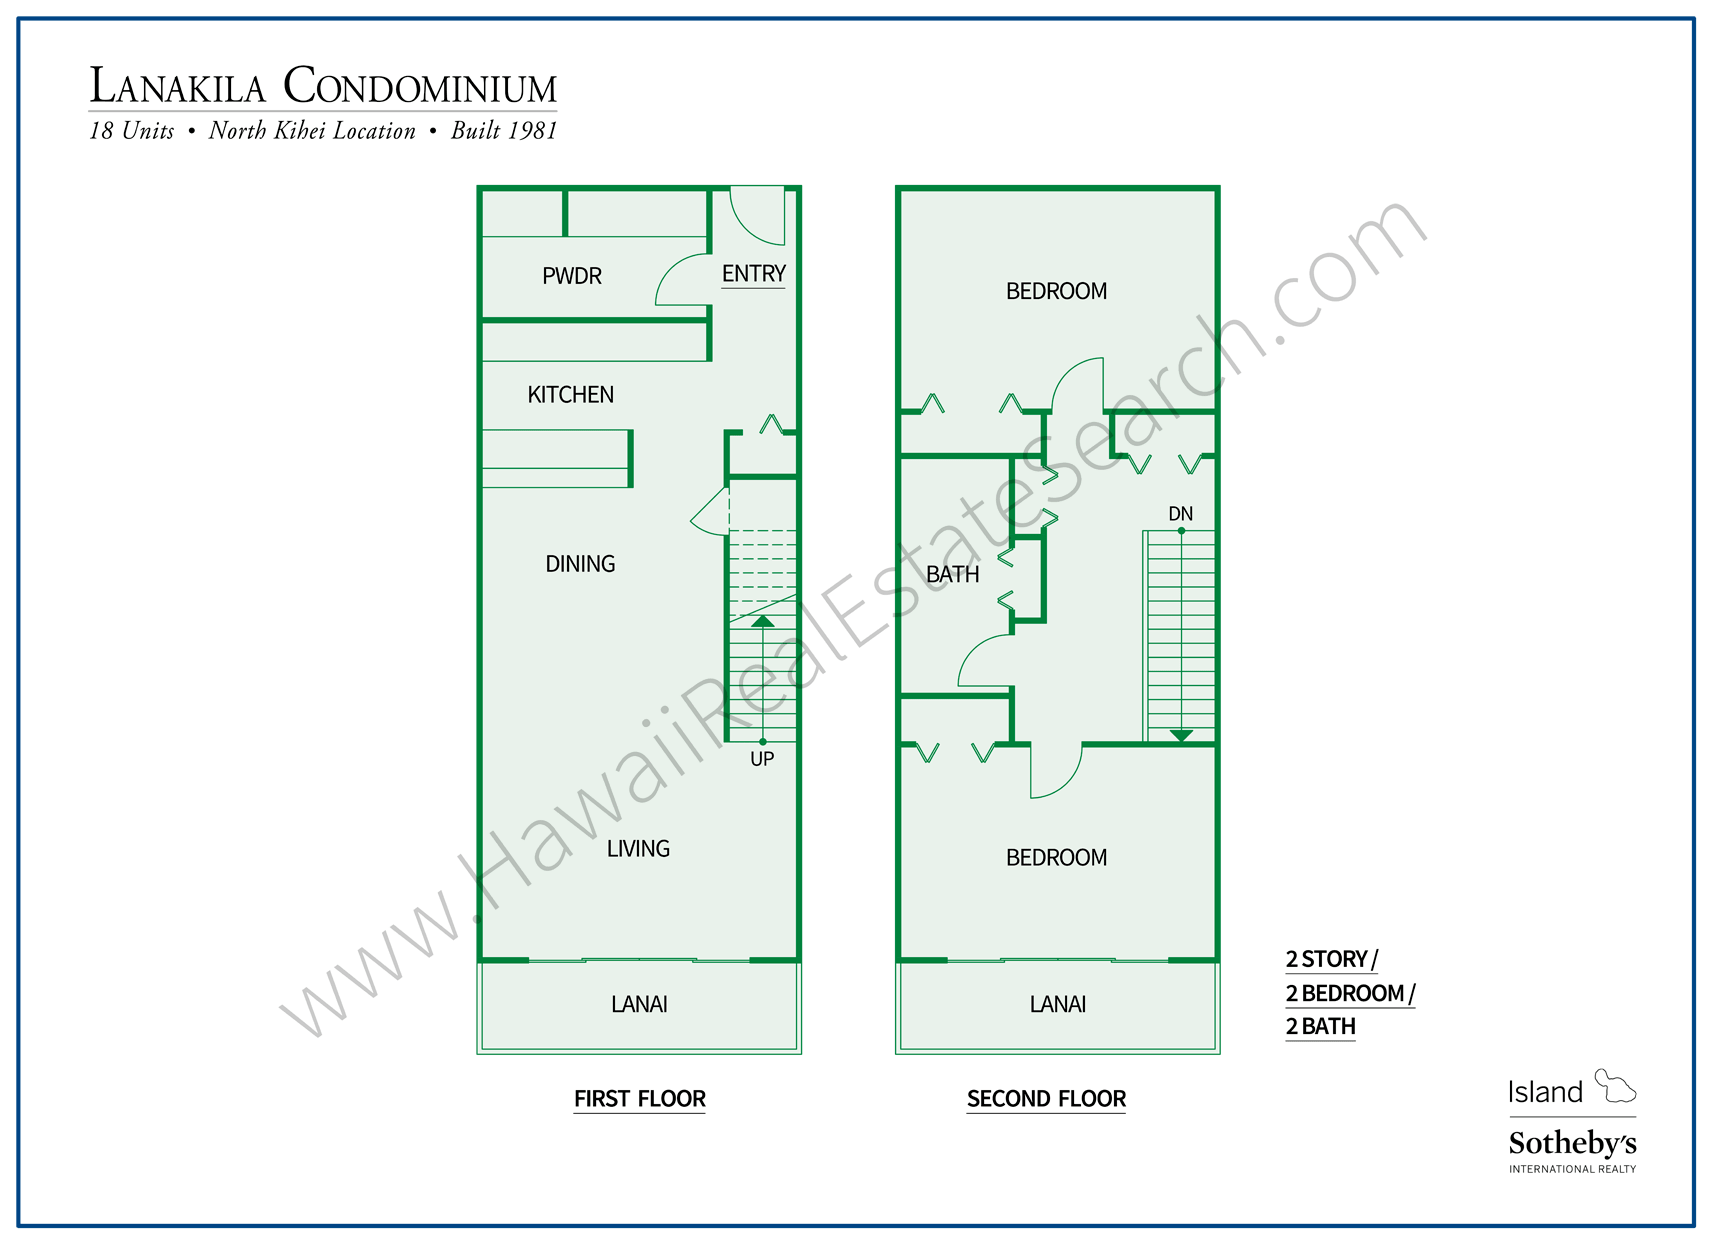 Floor plan of Condo in Lanakila